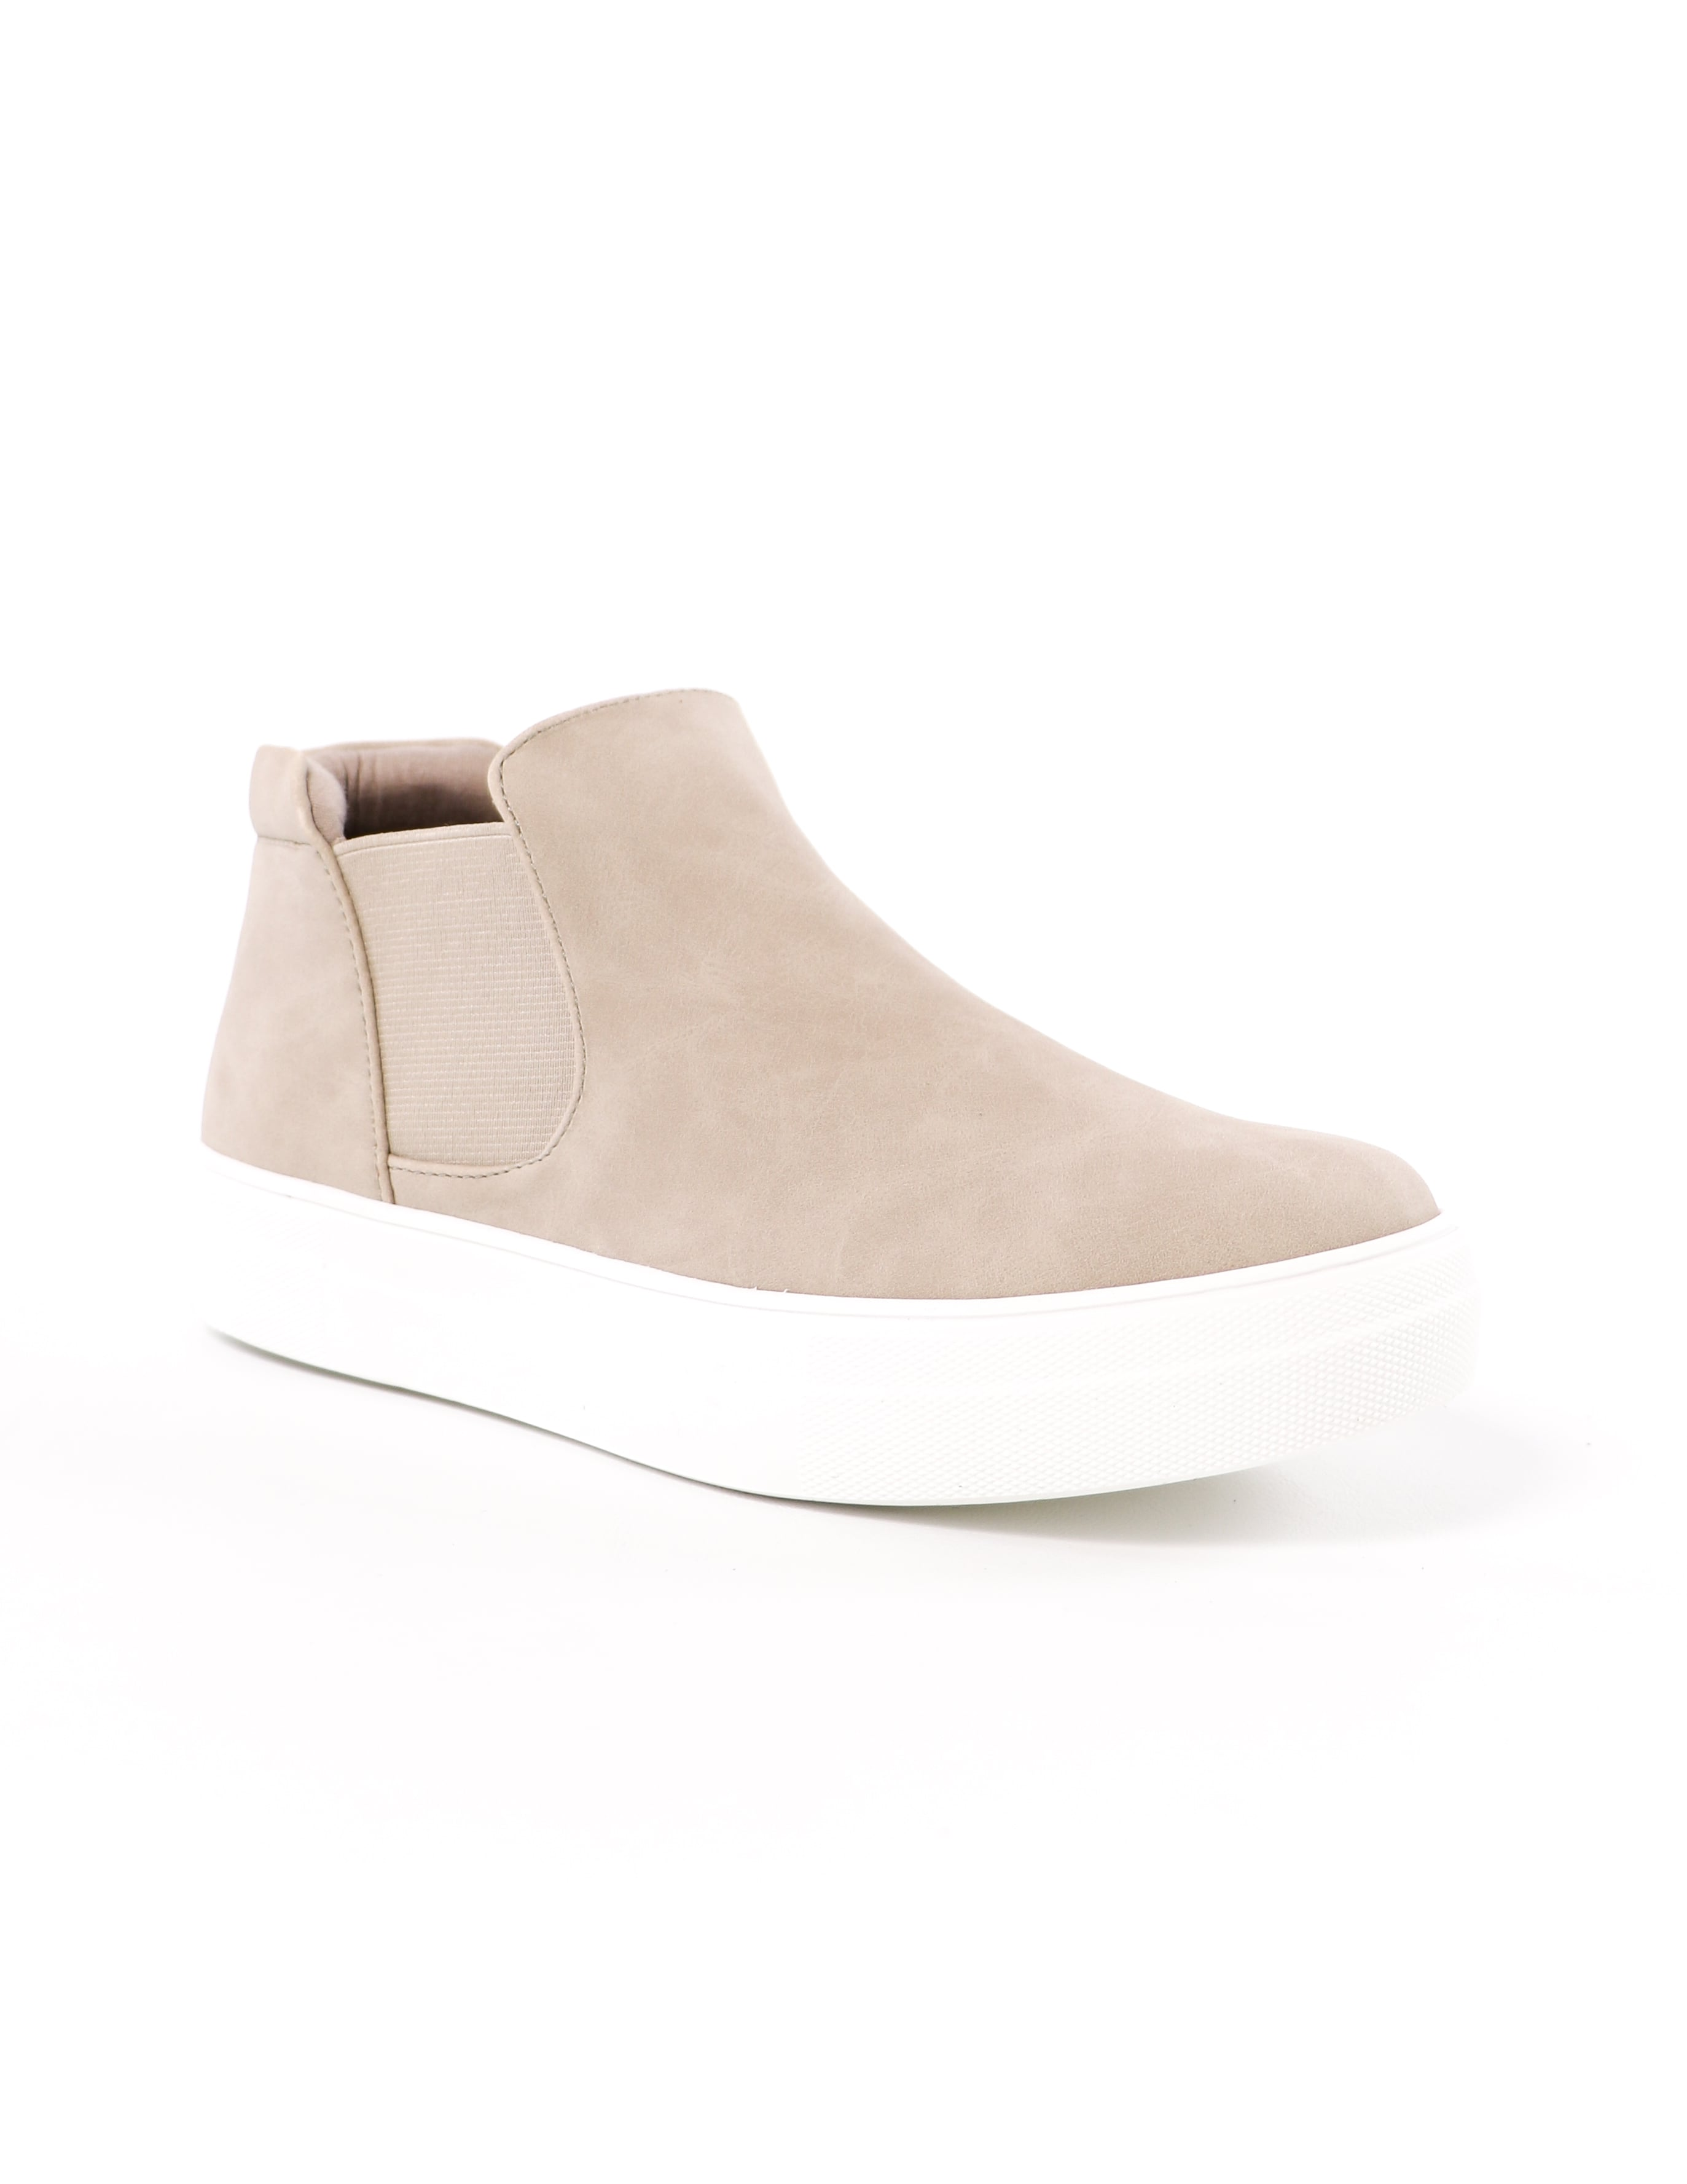 front of the sand now or never vegan leather platform high top sneaker - elle bleu shoes